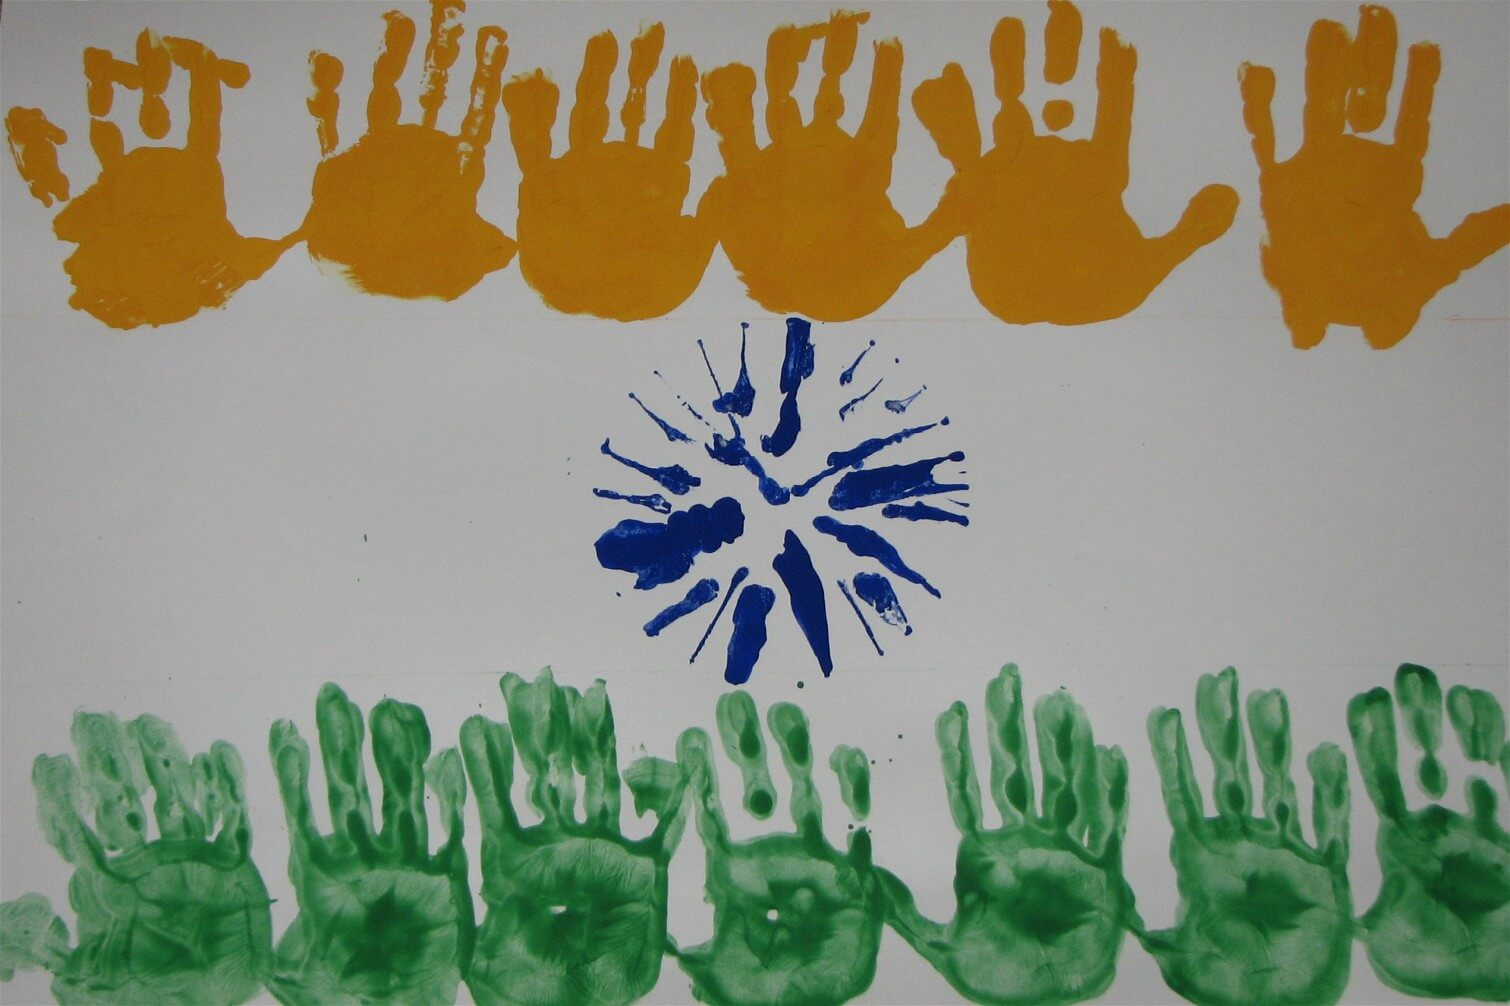 DIY Handprint India Flag Kids Craft DIY Craft Ideas for India Independence Day and Republic Day